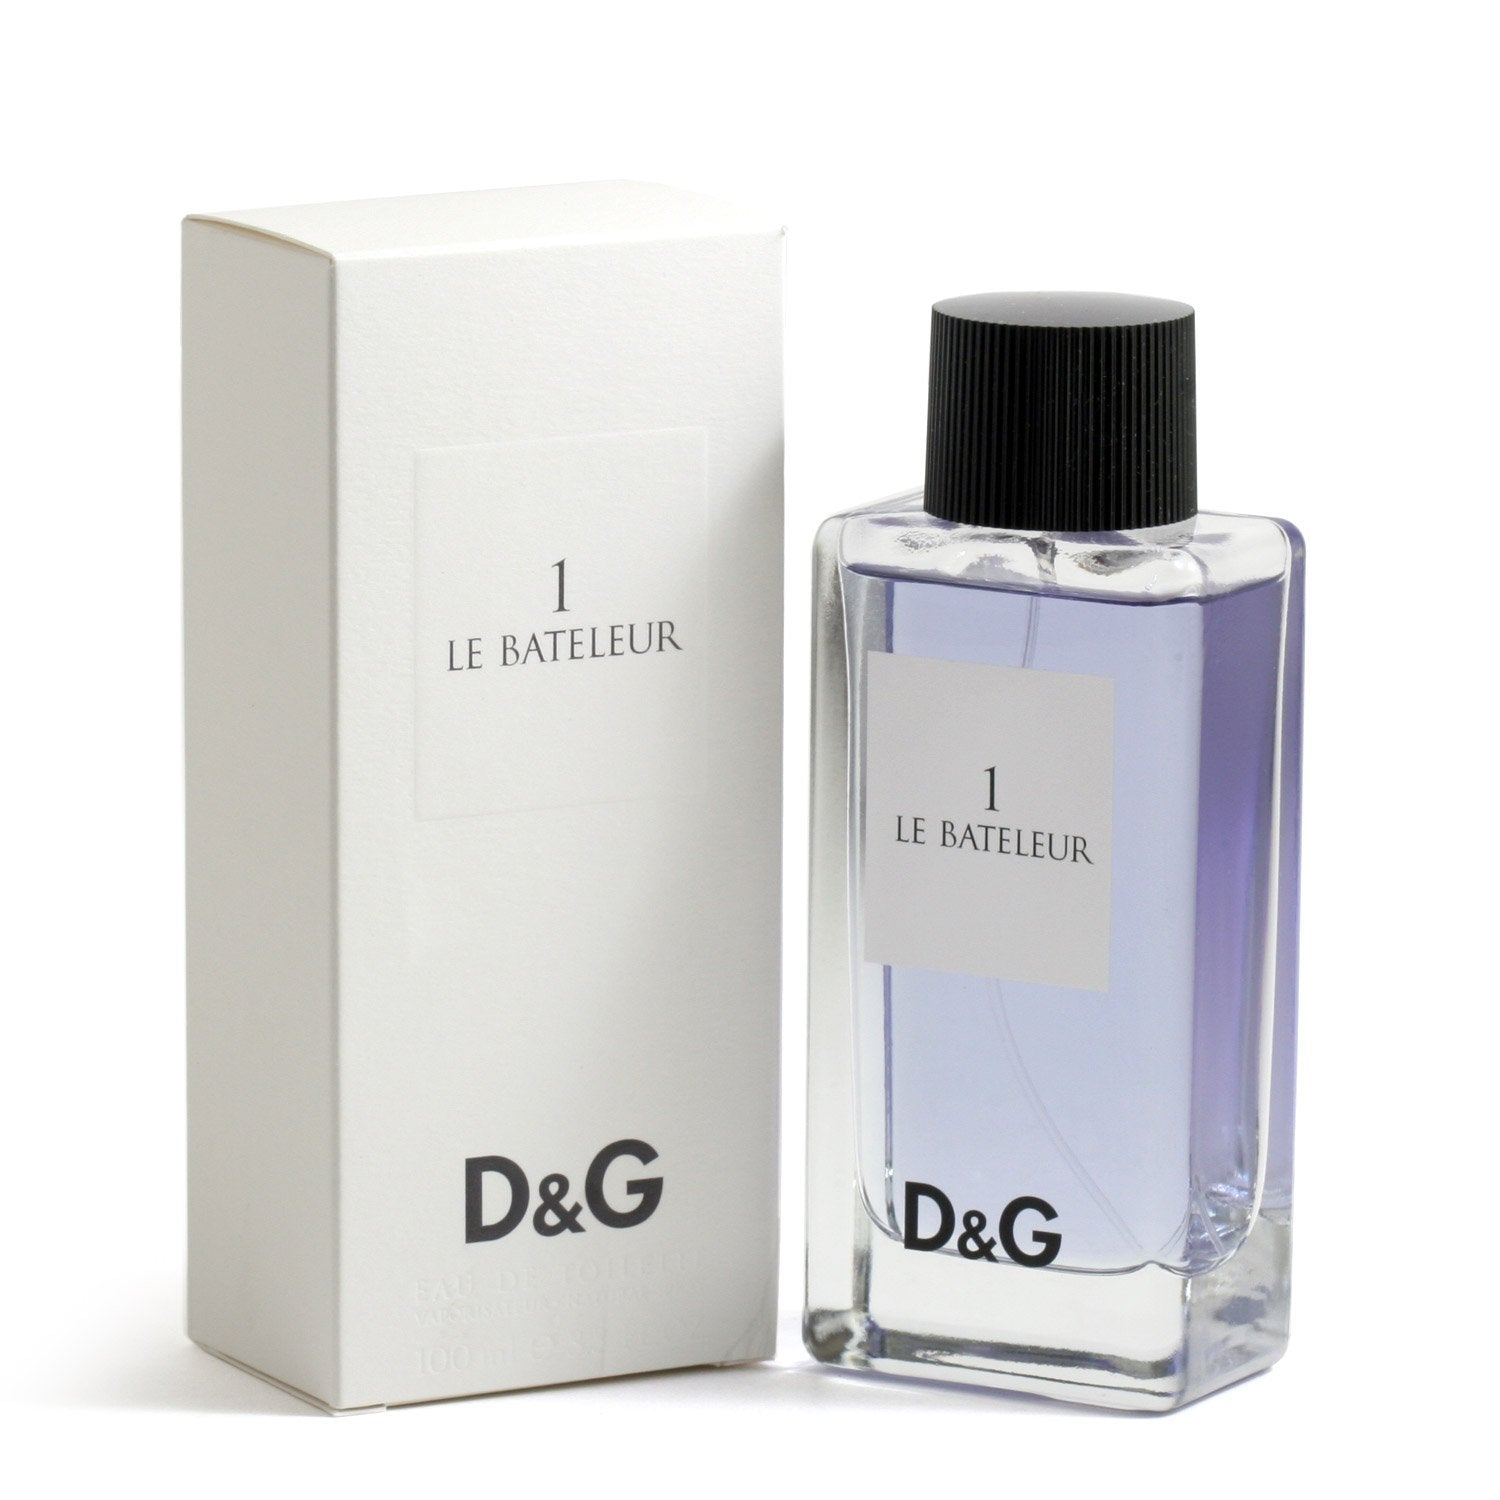 Perfume - DOLCE & GABBANA 1 LE BATELEUR FOR WOMEN - EAU DE TOILETTE SPRAY, 3.3 OZ